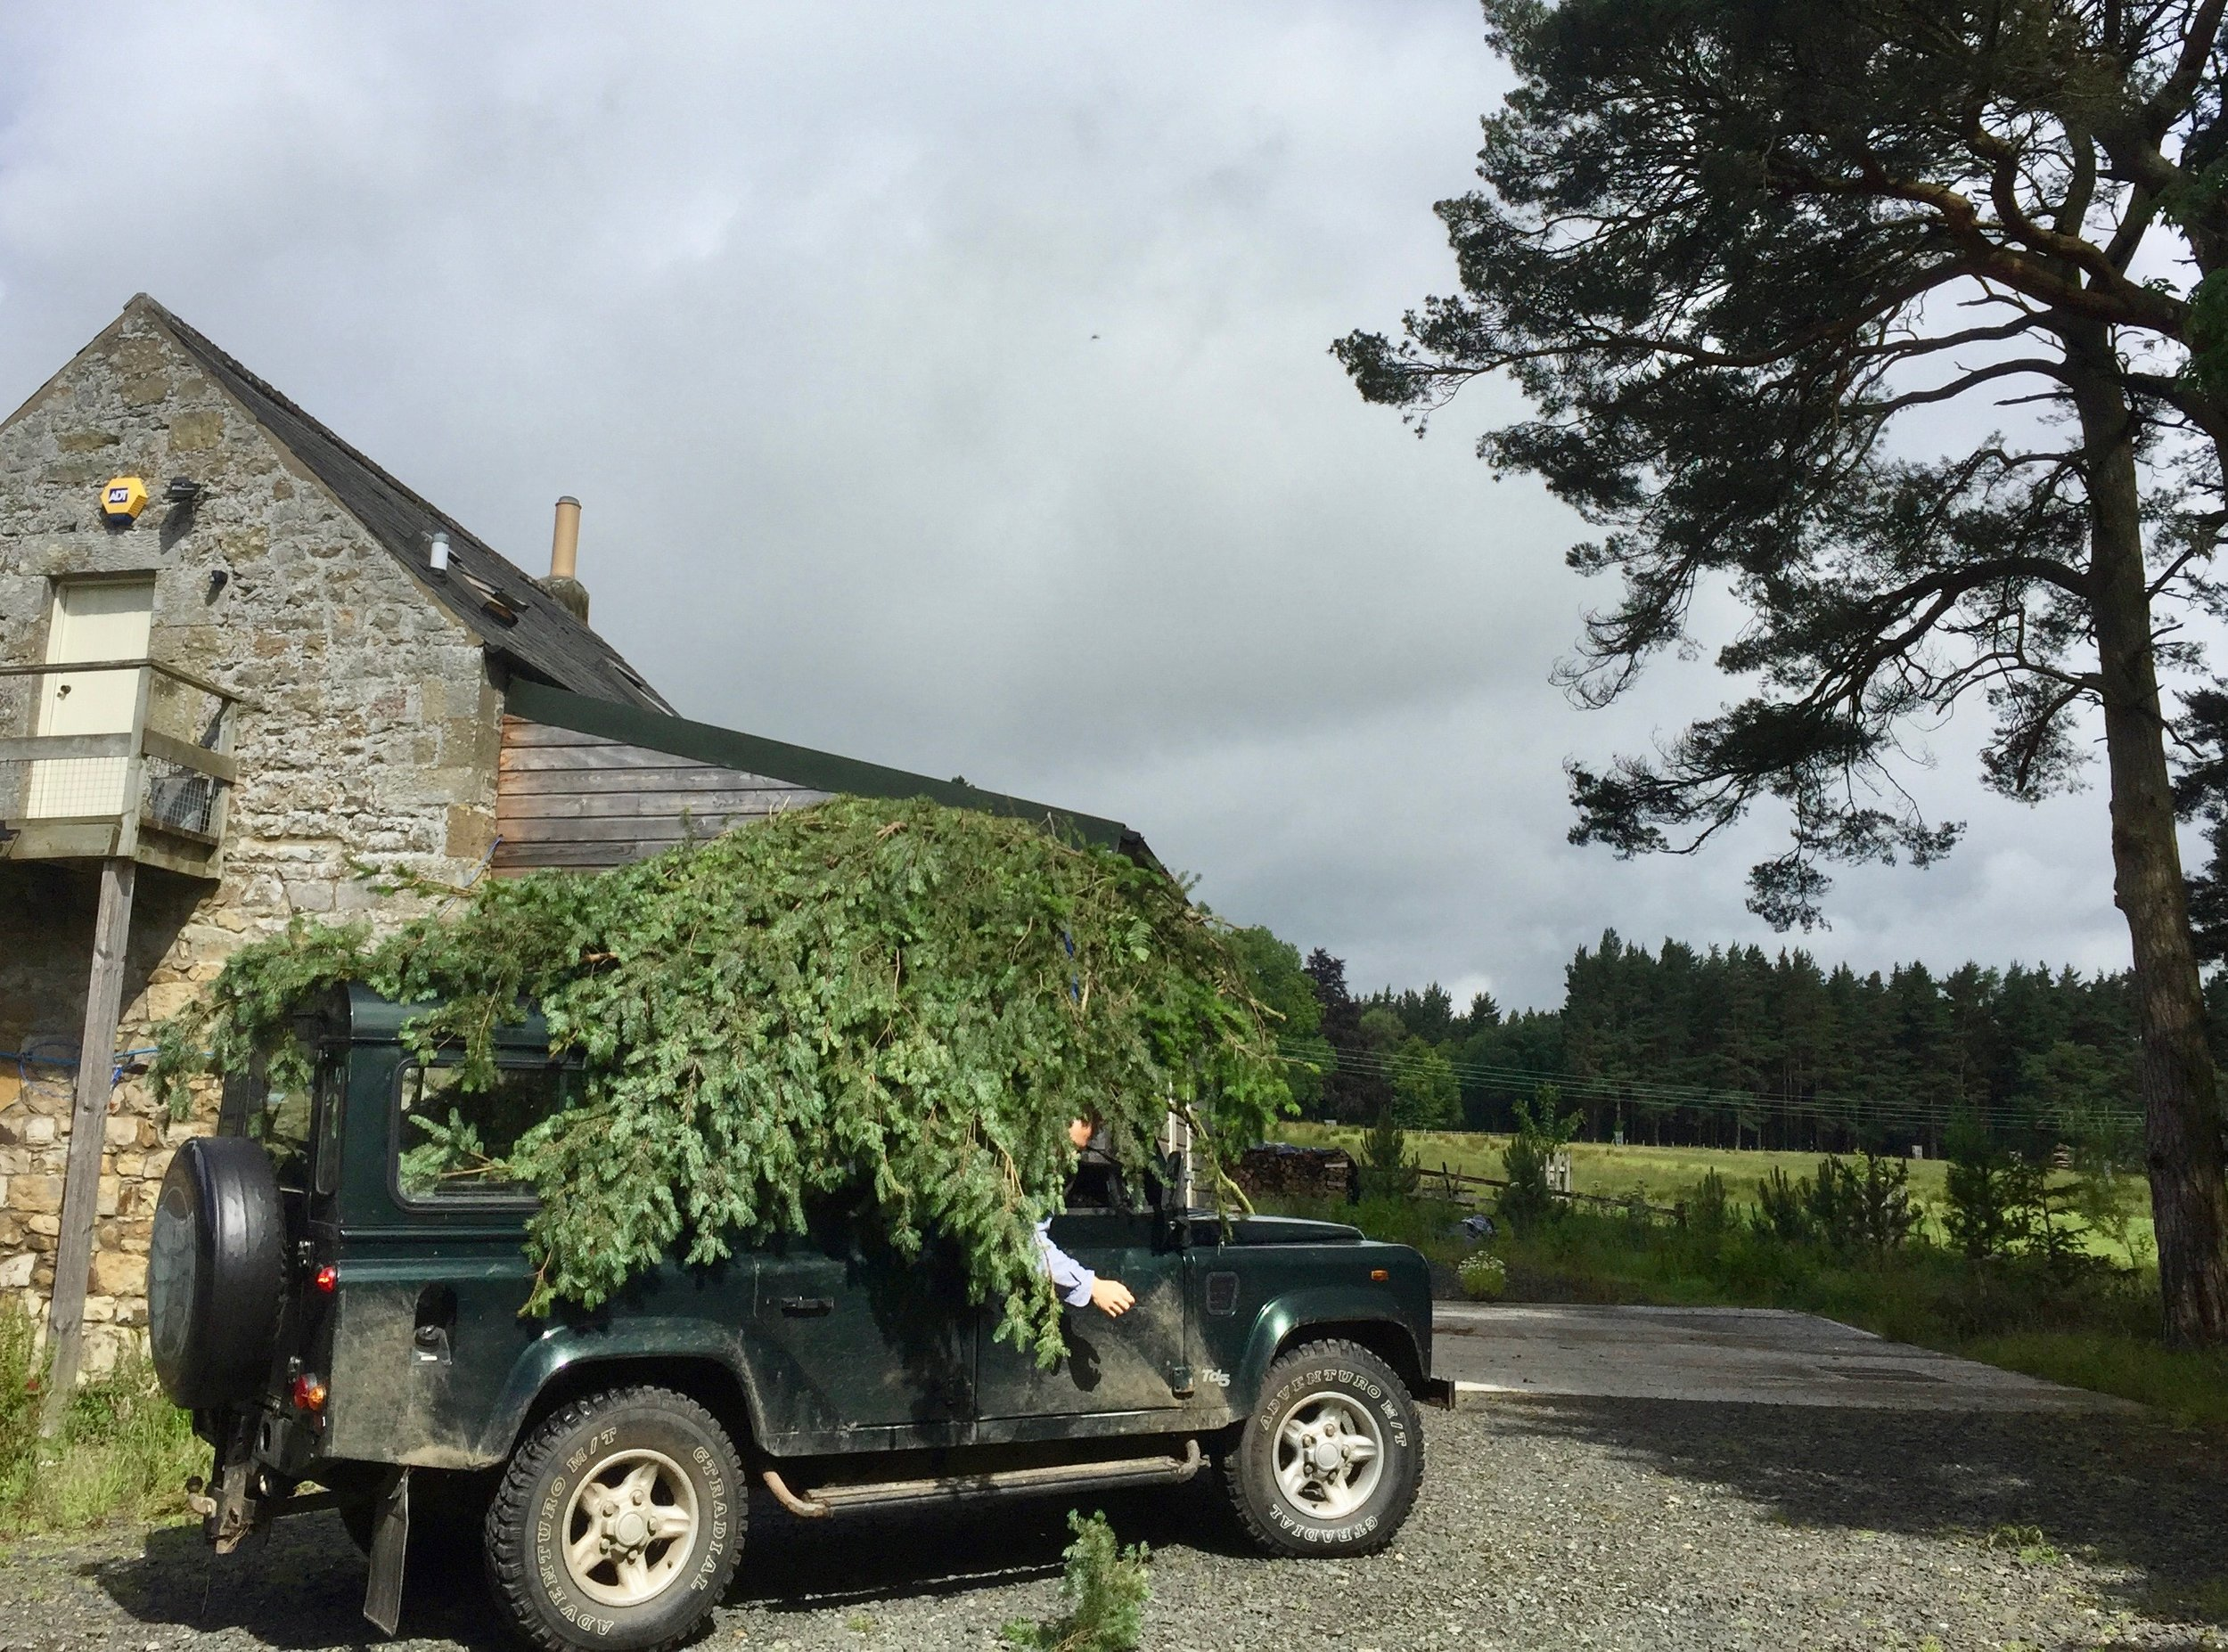 Felled, lopped and conveyed to the distillery.